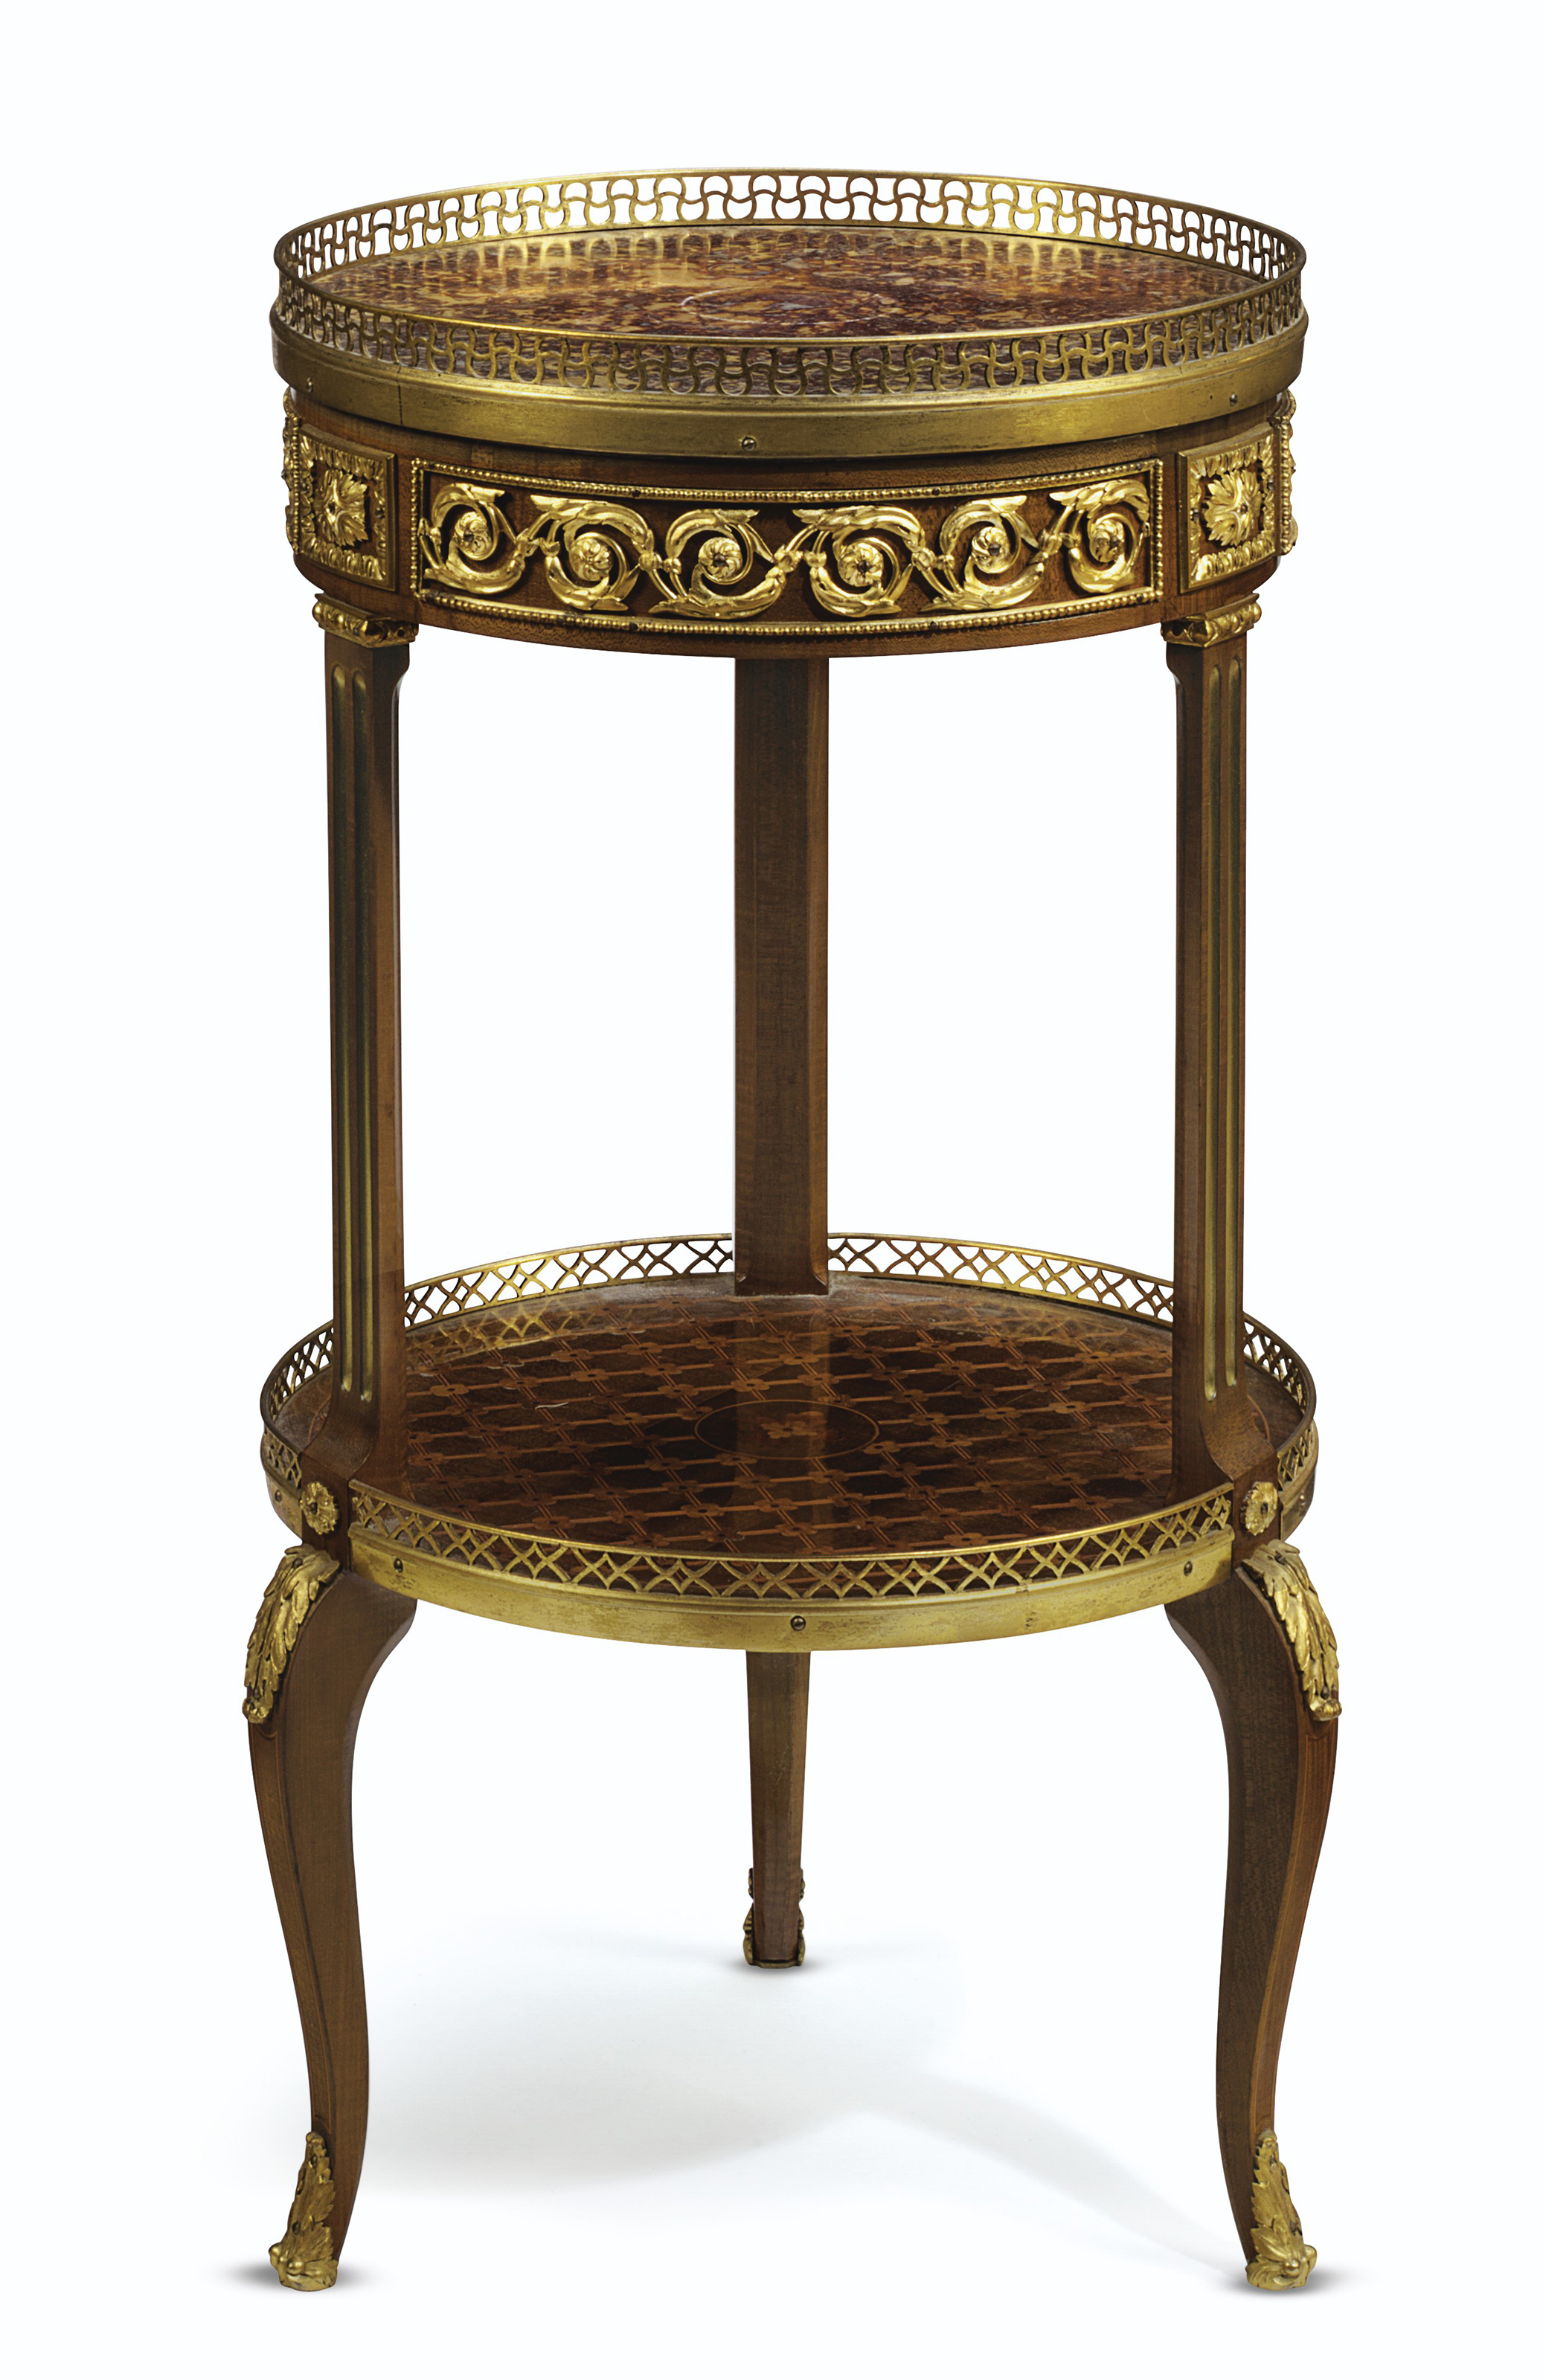 A LATE LOUIS XV ORMOLU-MOUNTED SYCAMORE AND FRUITWOOD-INLAID TABLE EN CHIFFONIERE